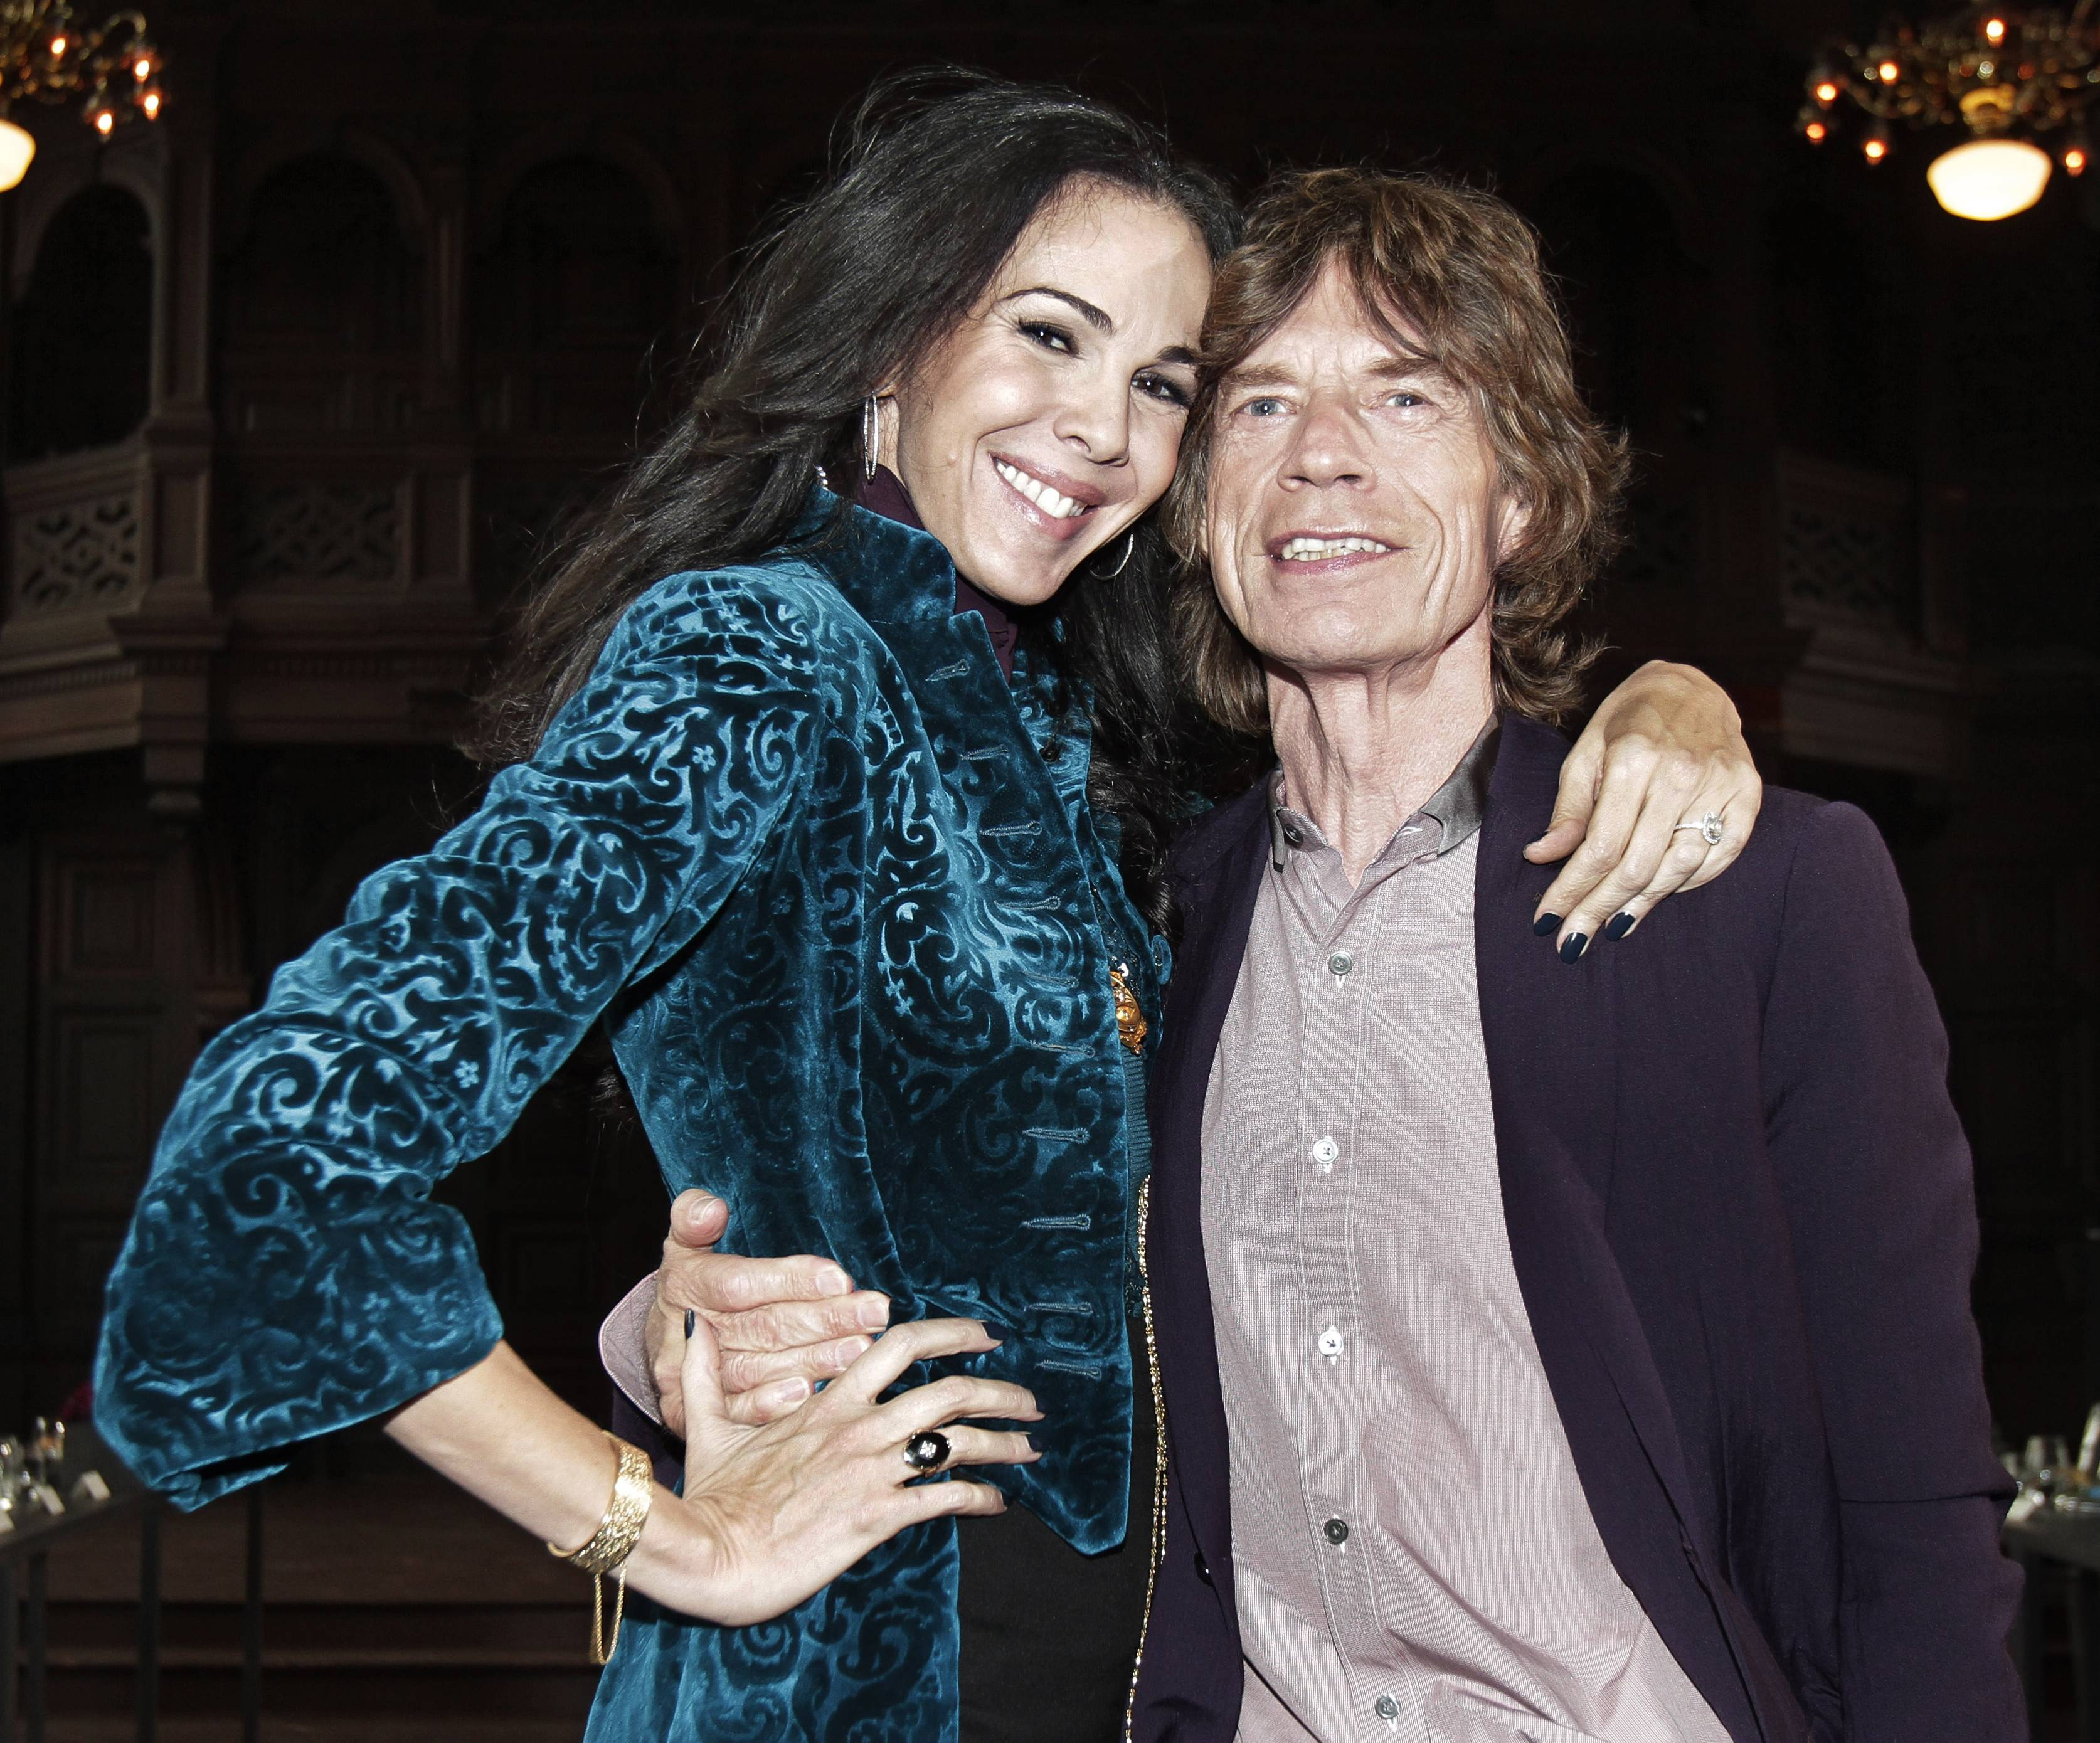 The death of fashion designer L'Wren Scott, the longtime girlfriend of Mick Jagger, was suicide, the New York City medical examiner's office said Wednesday.